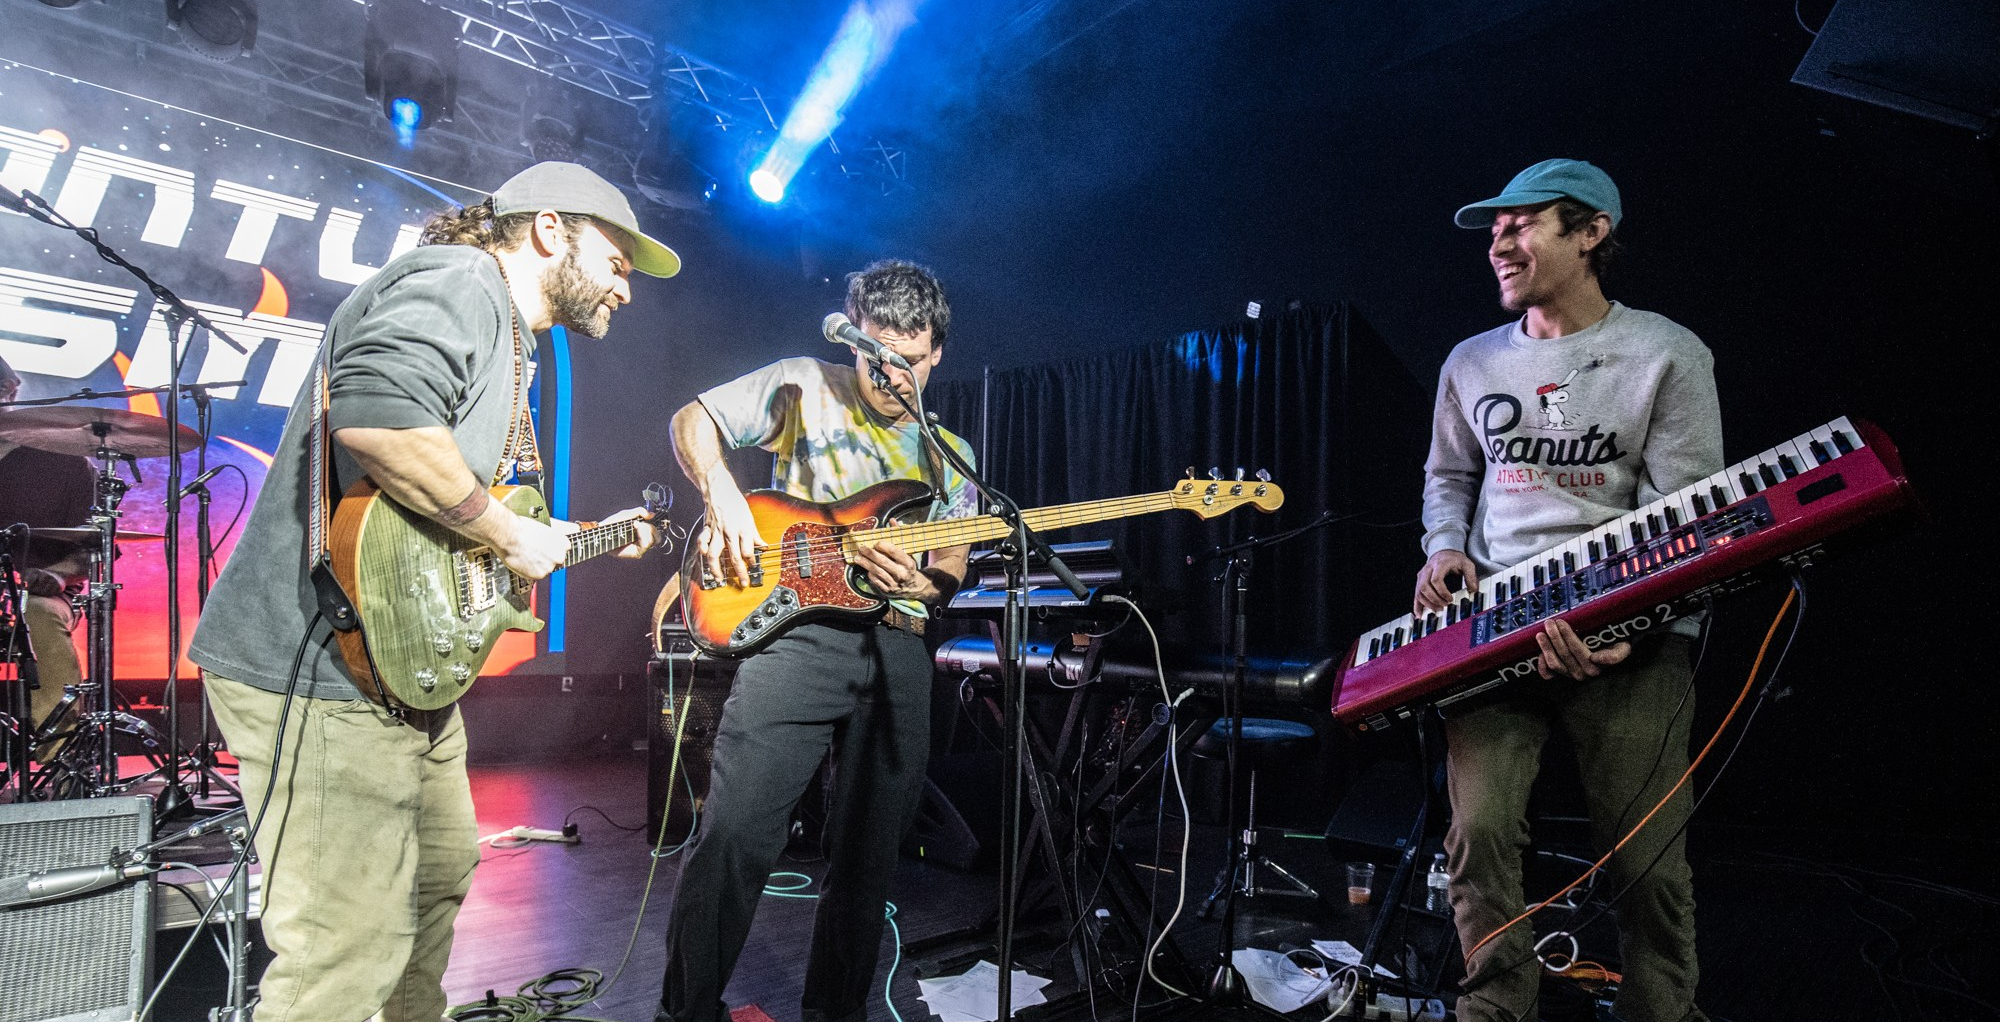 GALLERY: Quantum Cosmic and Let's Be Leonard with Scott Hannay Plays Video Games at Skyloft in Albany, NY